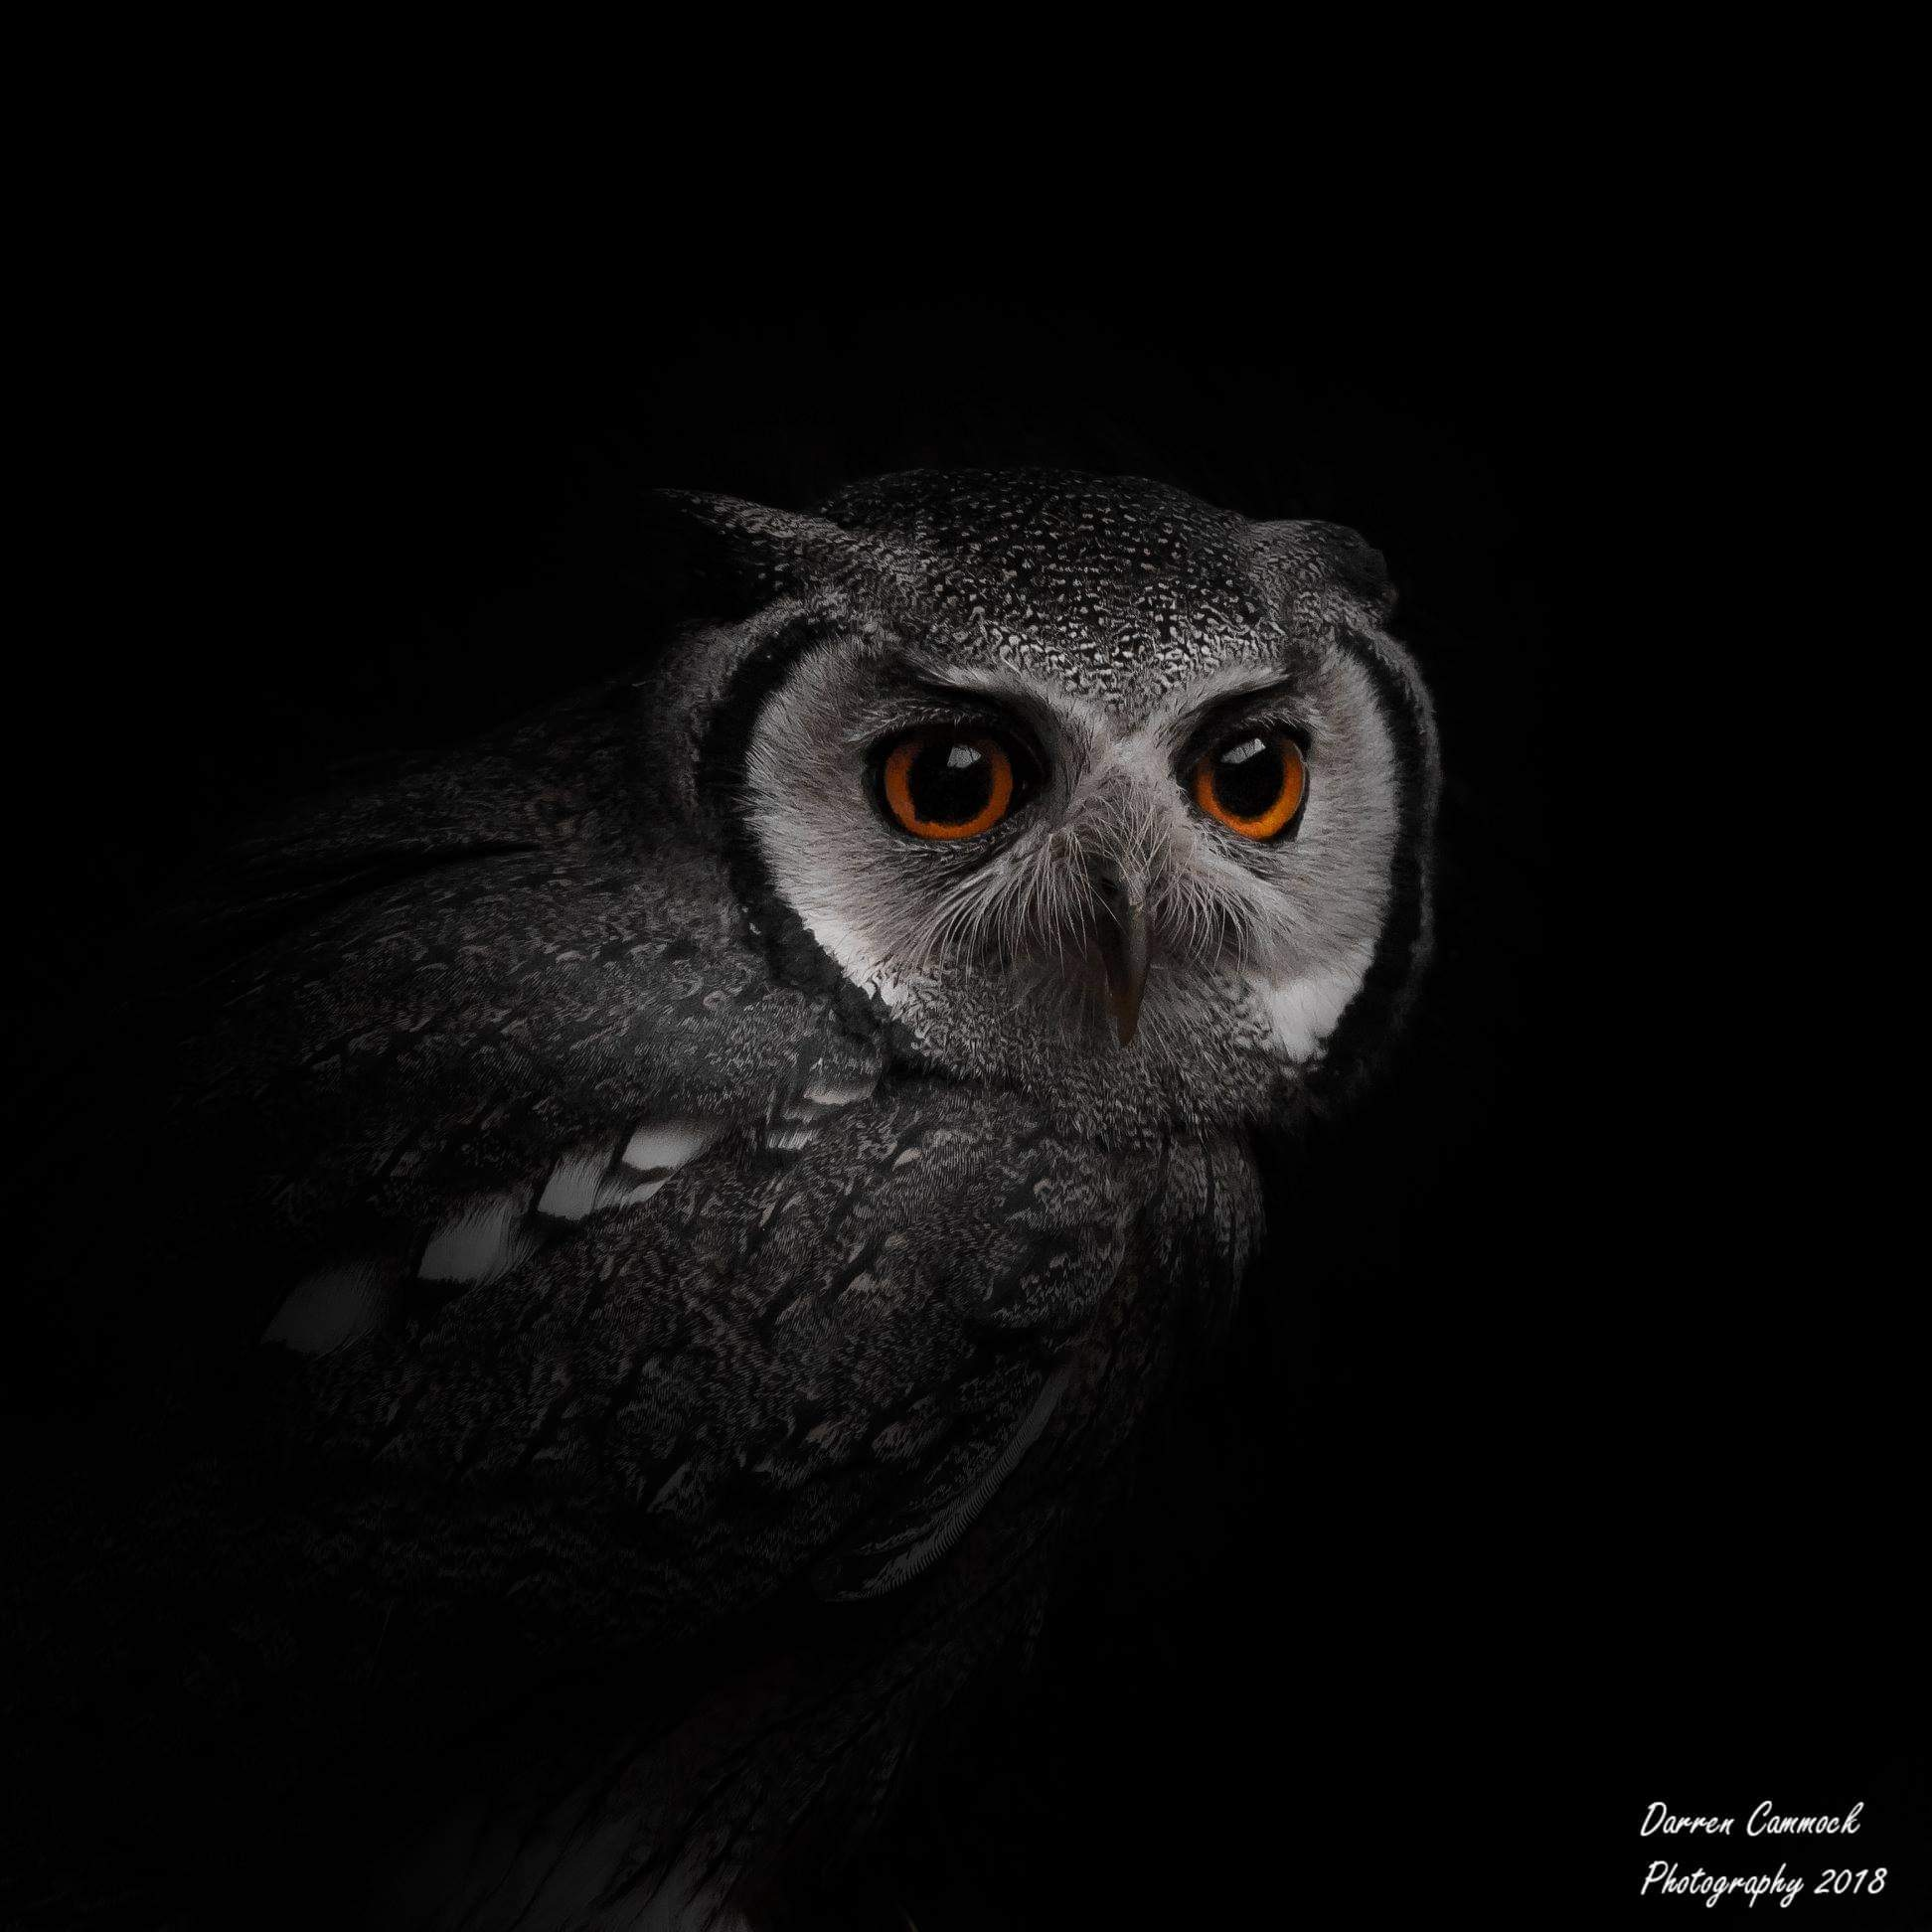 Northern White Faced Owl by darrencammock